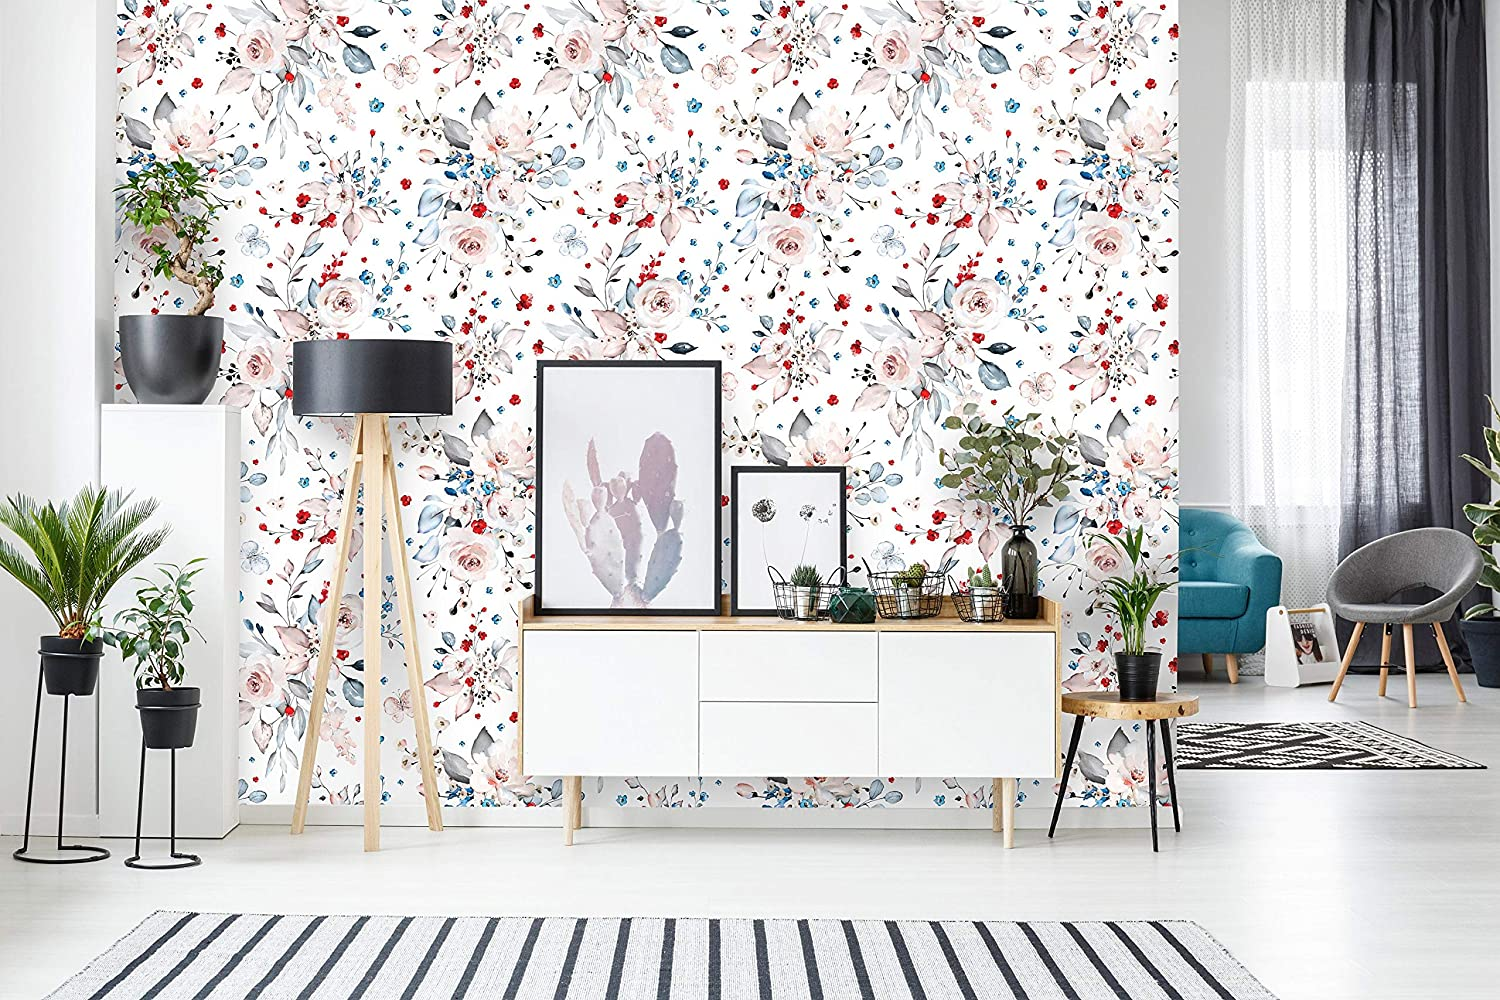 Removable Wallpaper Peel And Stick Floral Wallpaper Self